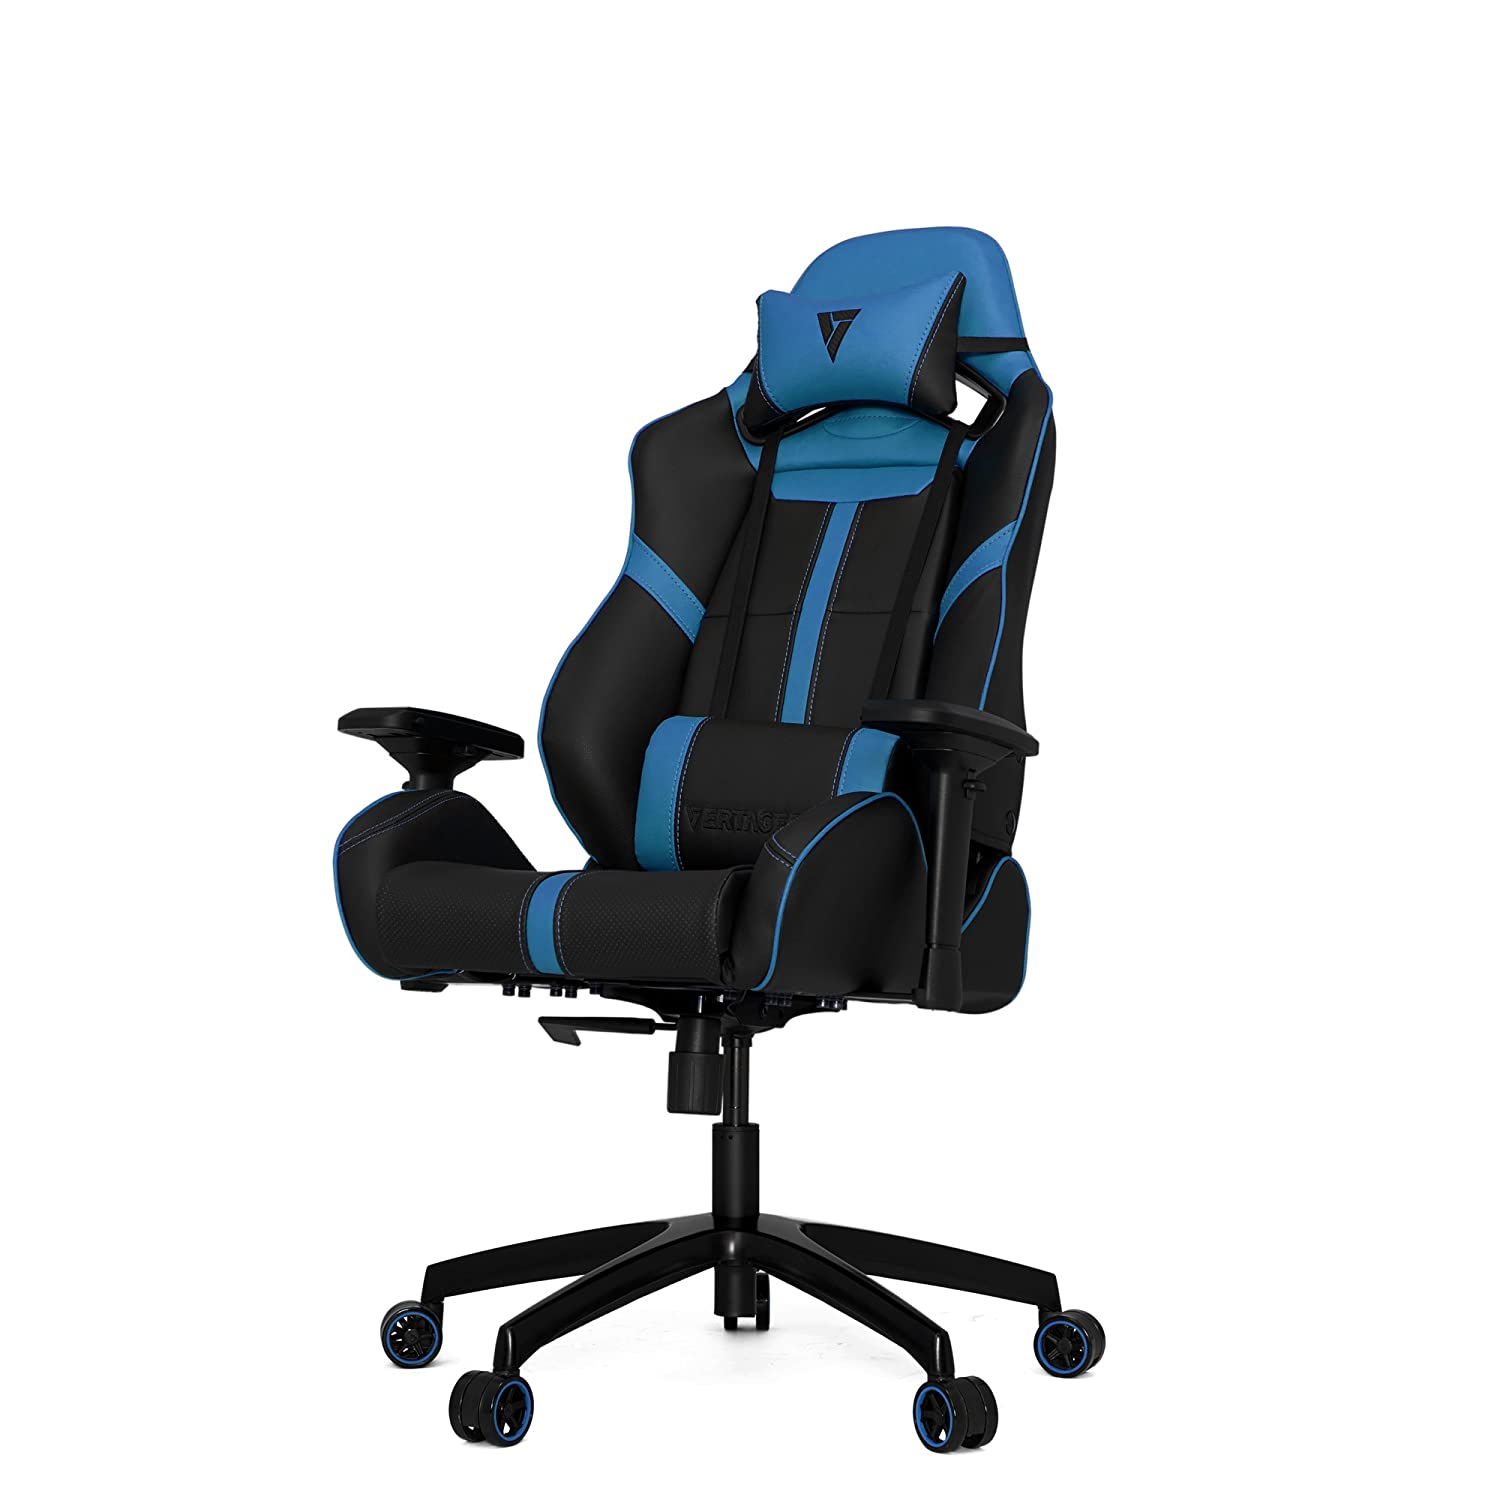 7 Best Ergonomic PC Gaming Chairs